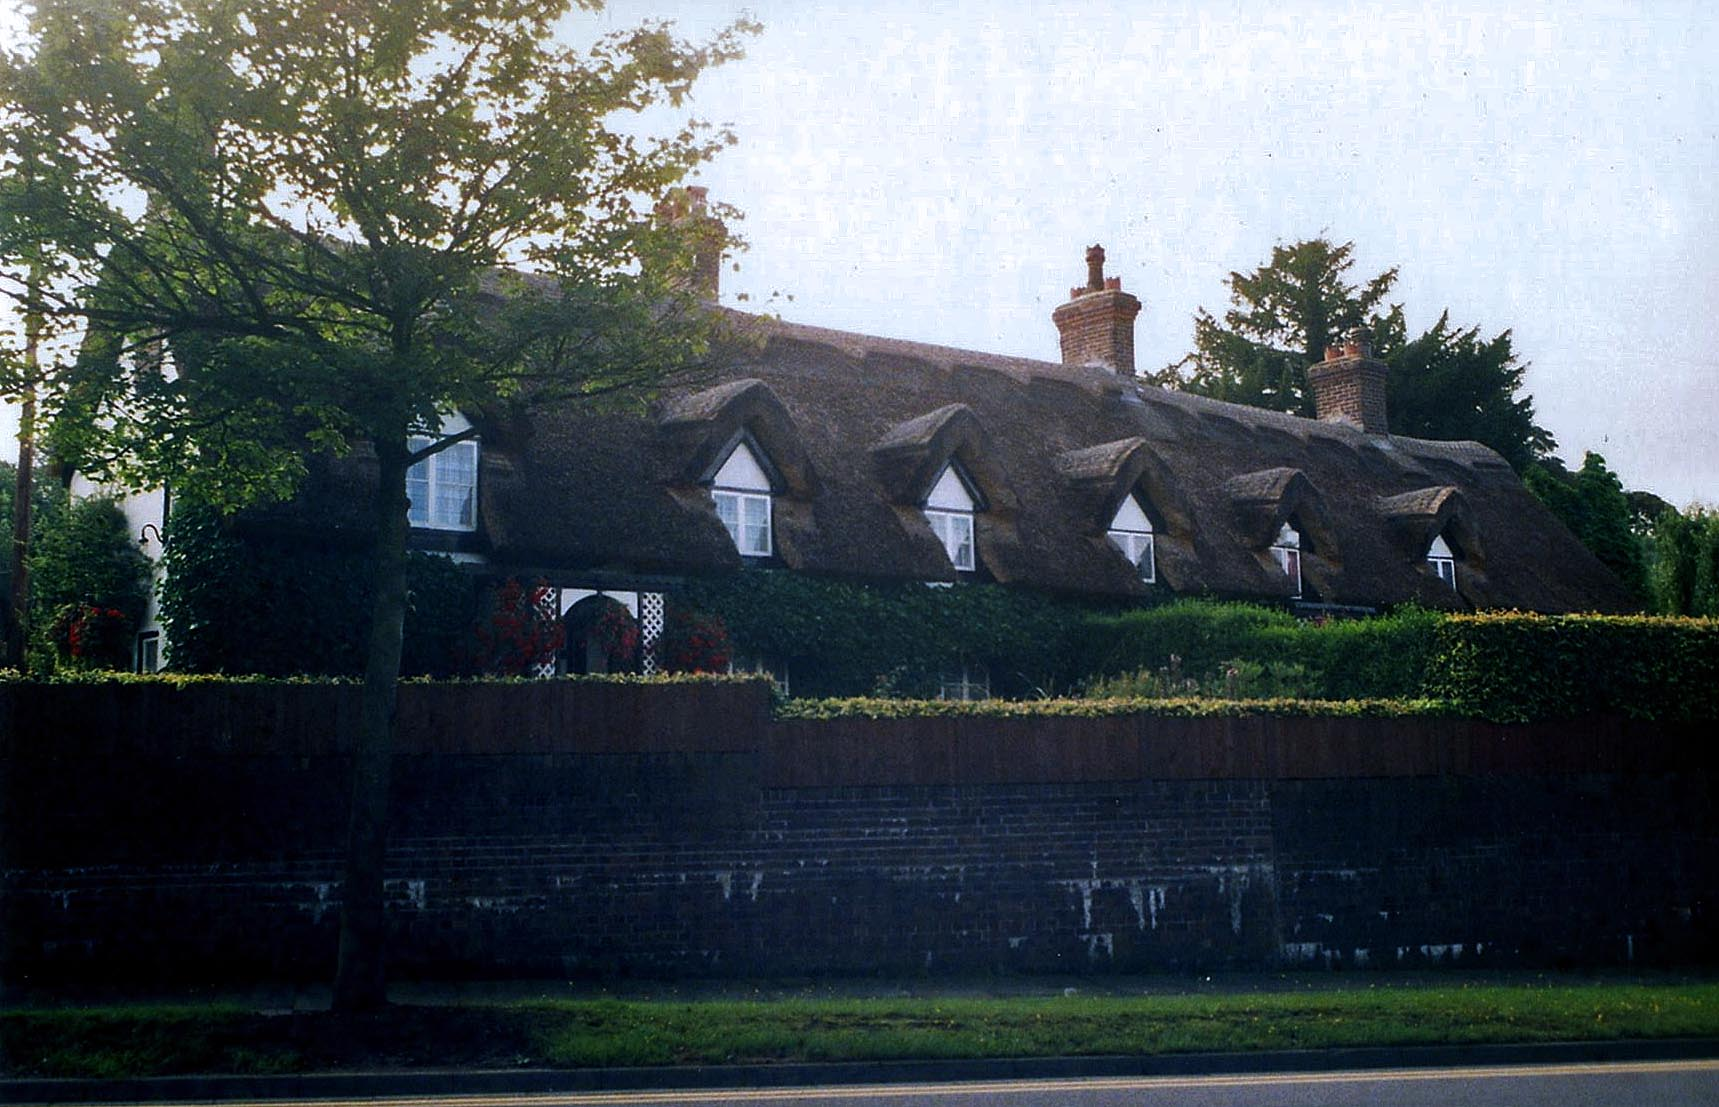 thatching stoke on trent england